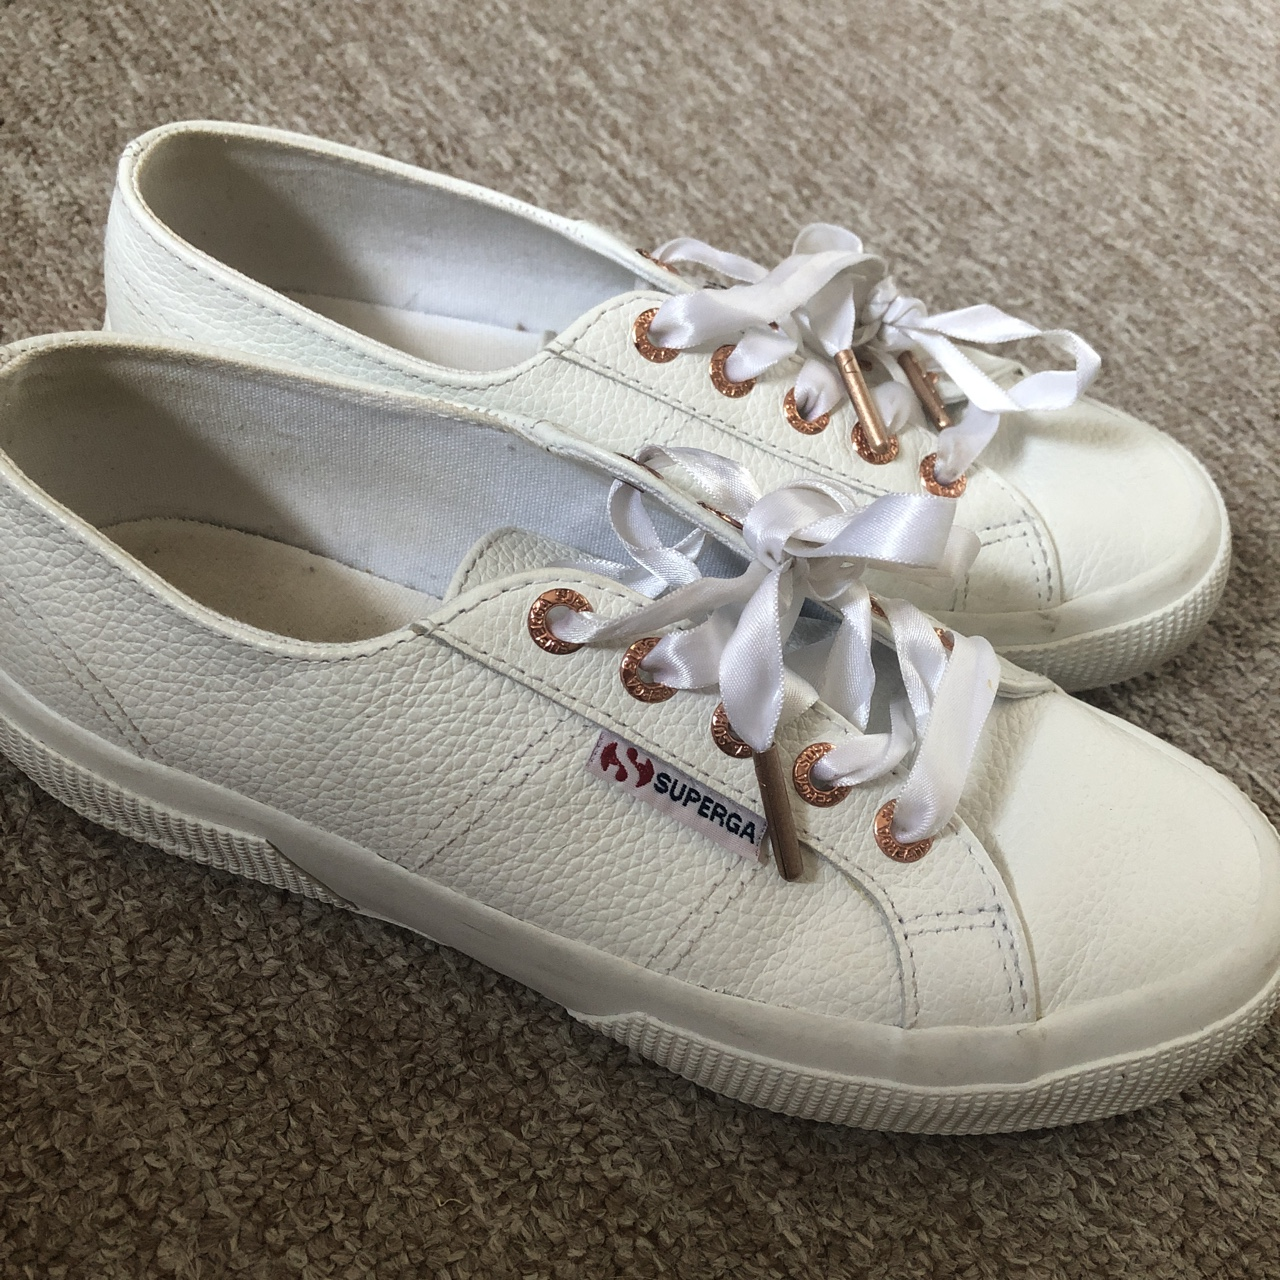 White Superga leather trainers with